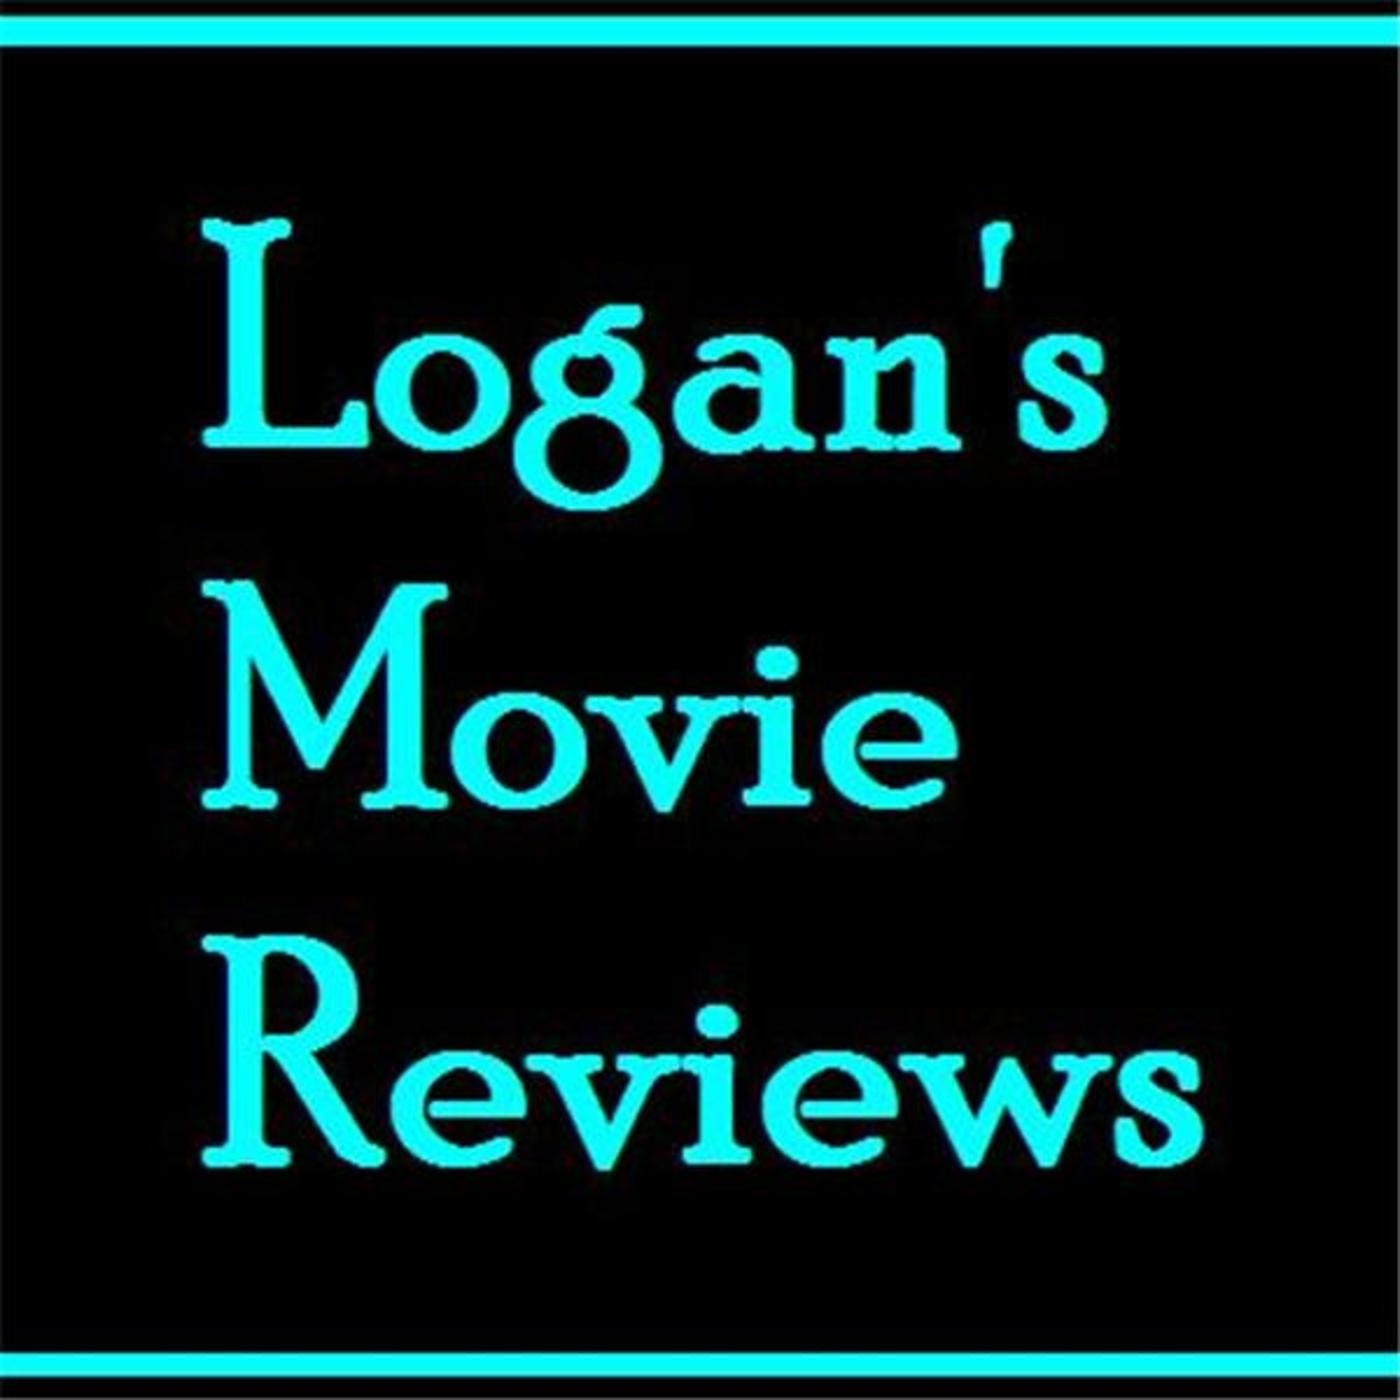 Logan's Movie Reviews